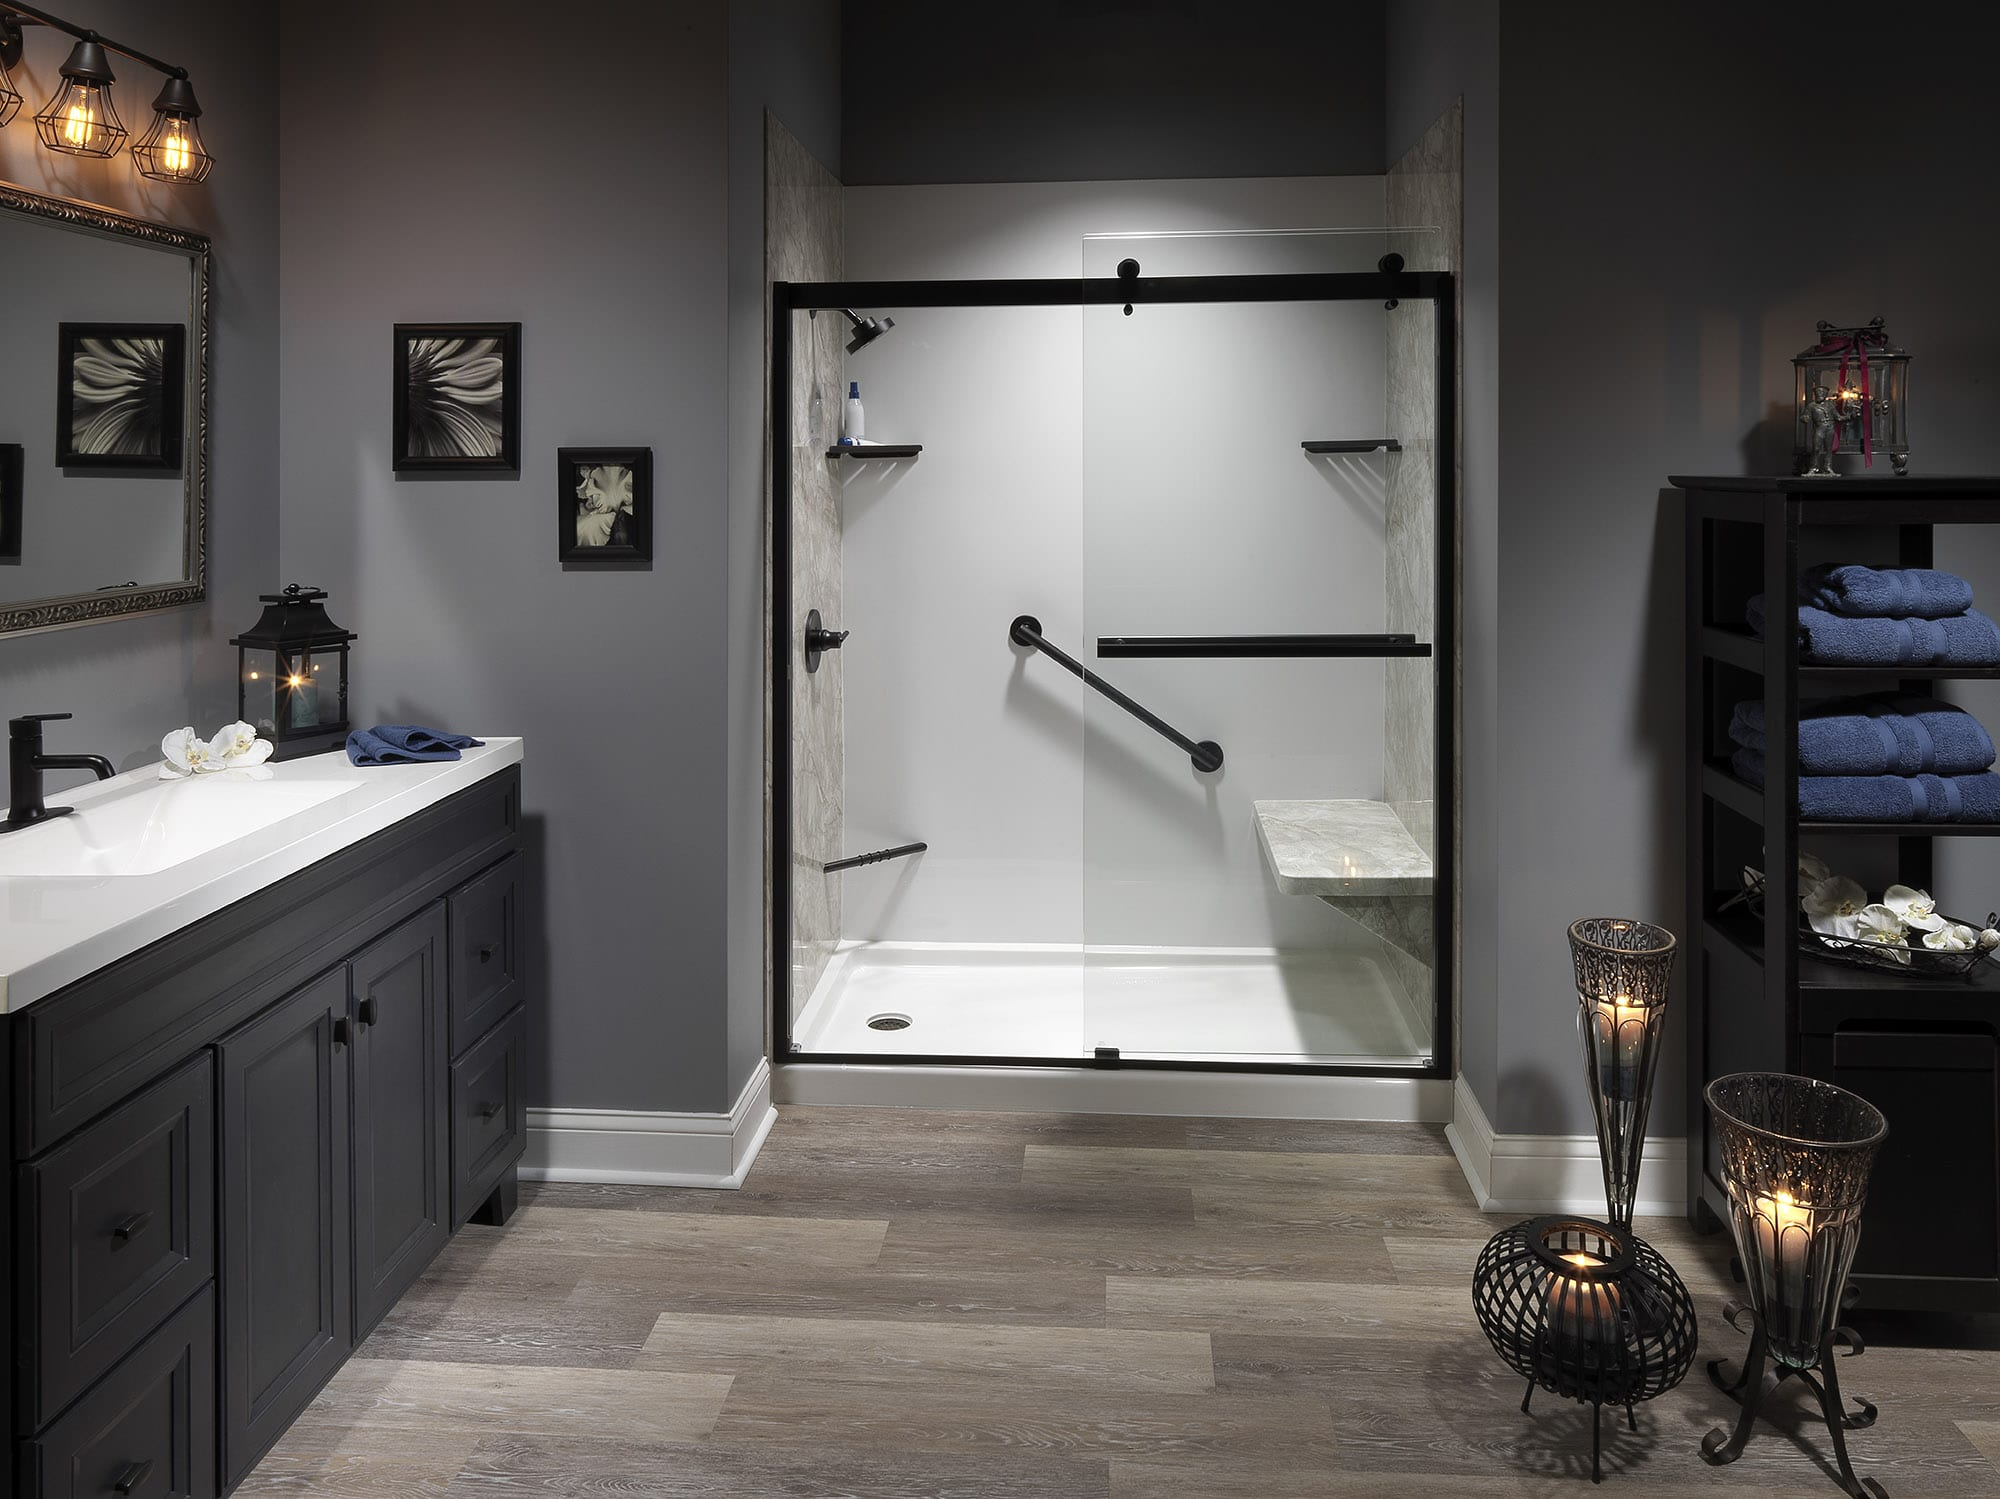 South Florida Shower Replacement - Bathrooms Plus Inc (12)